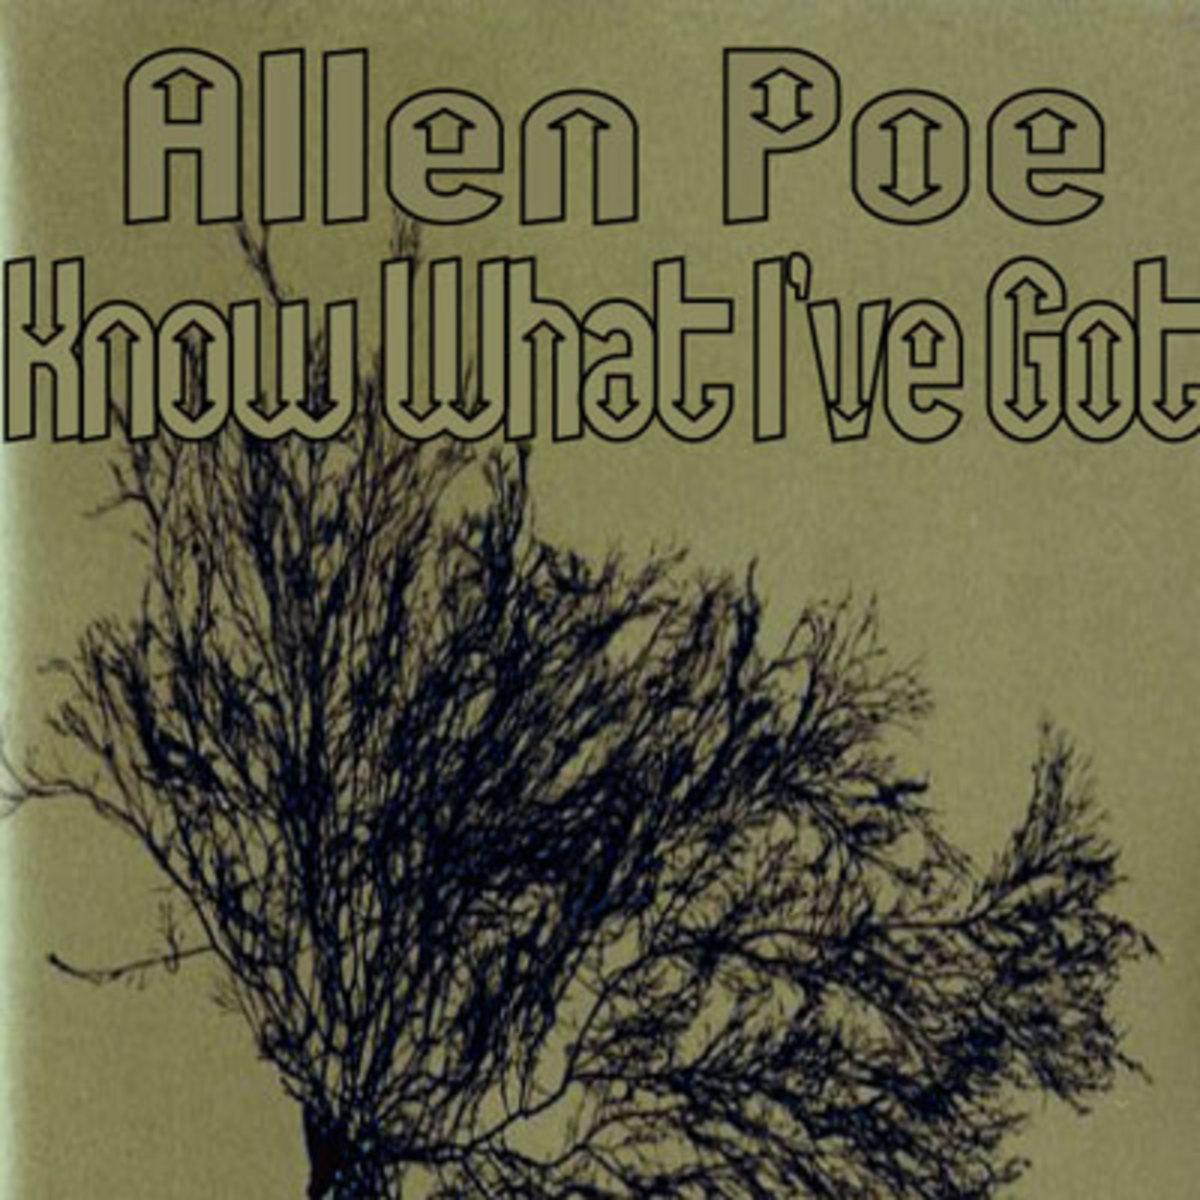 allenpoe-knowwhativegot.jpg